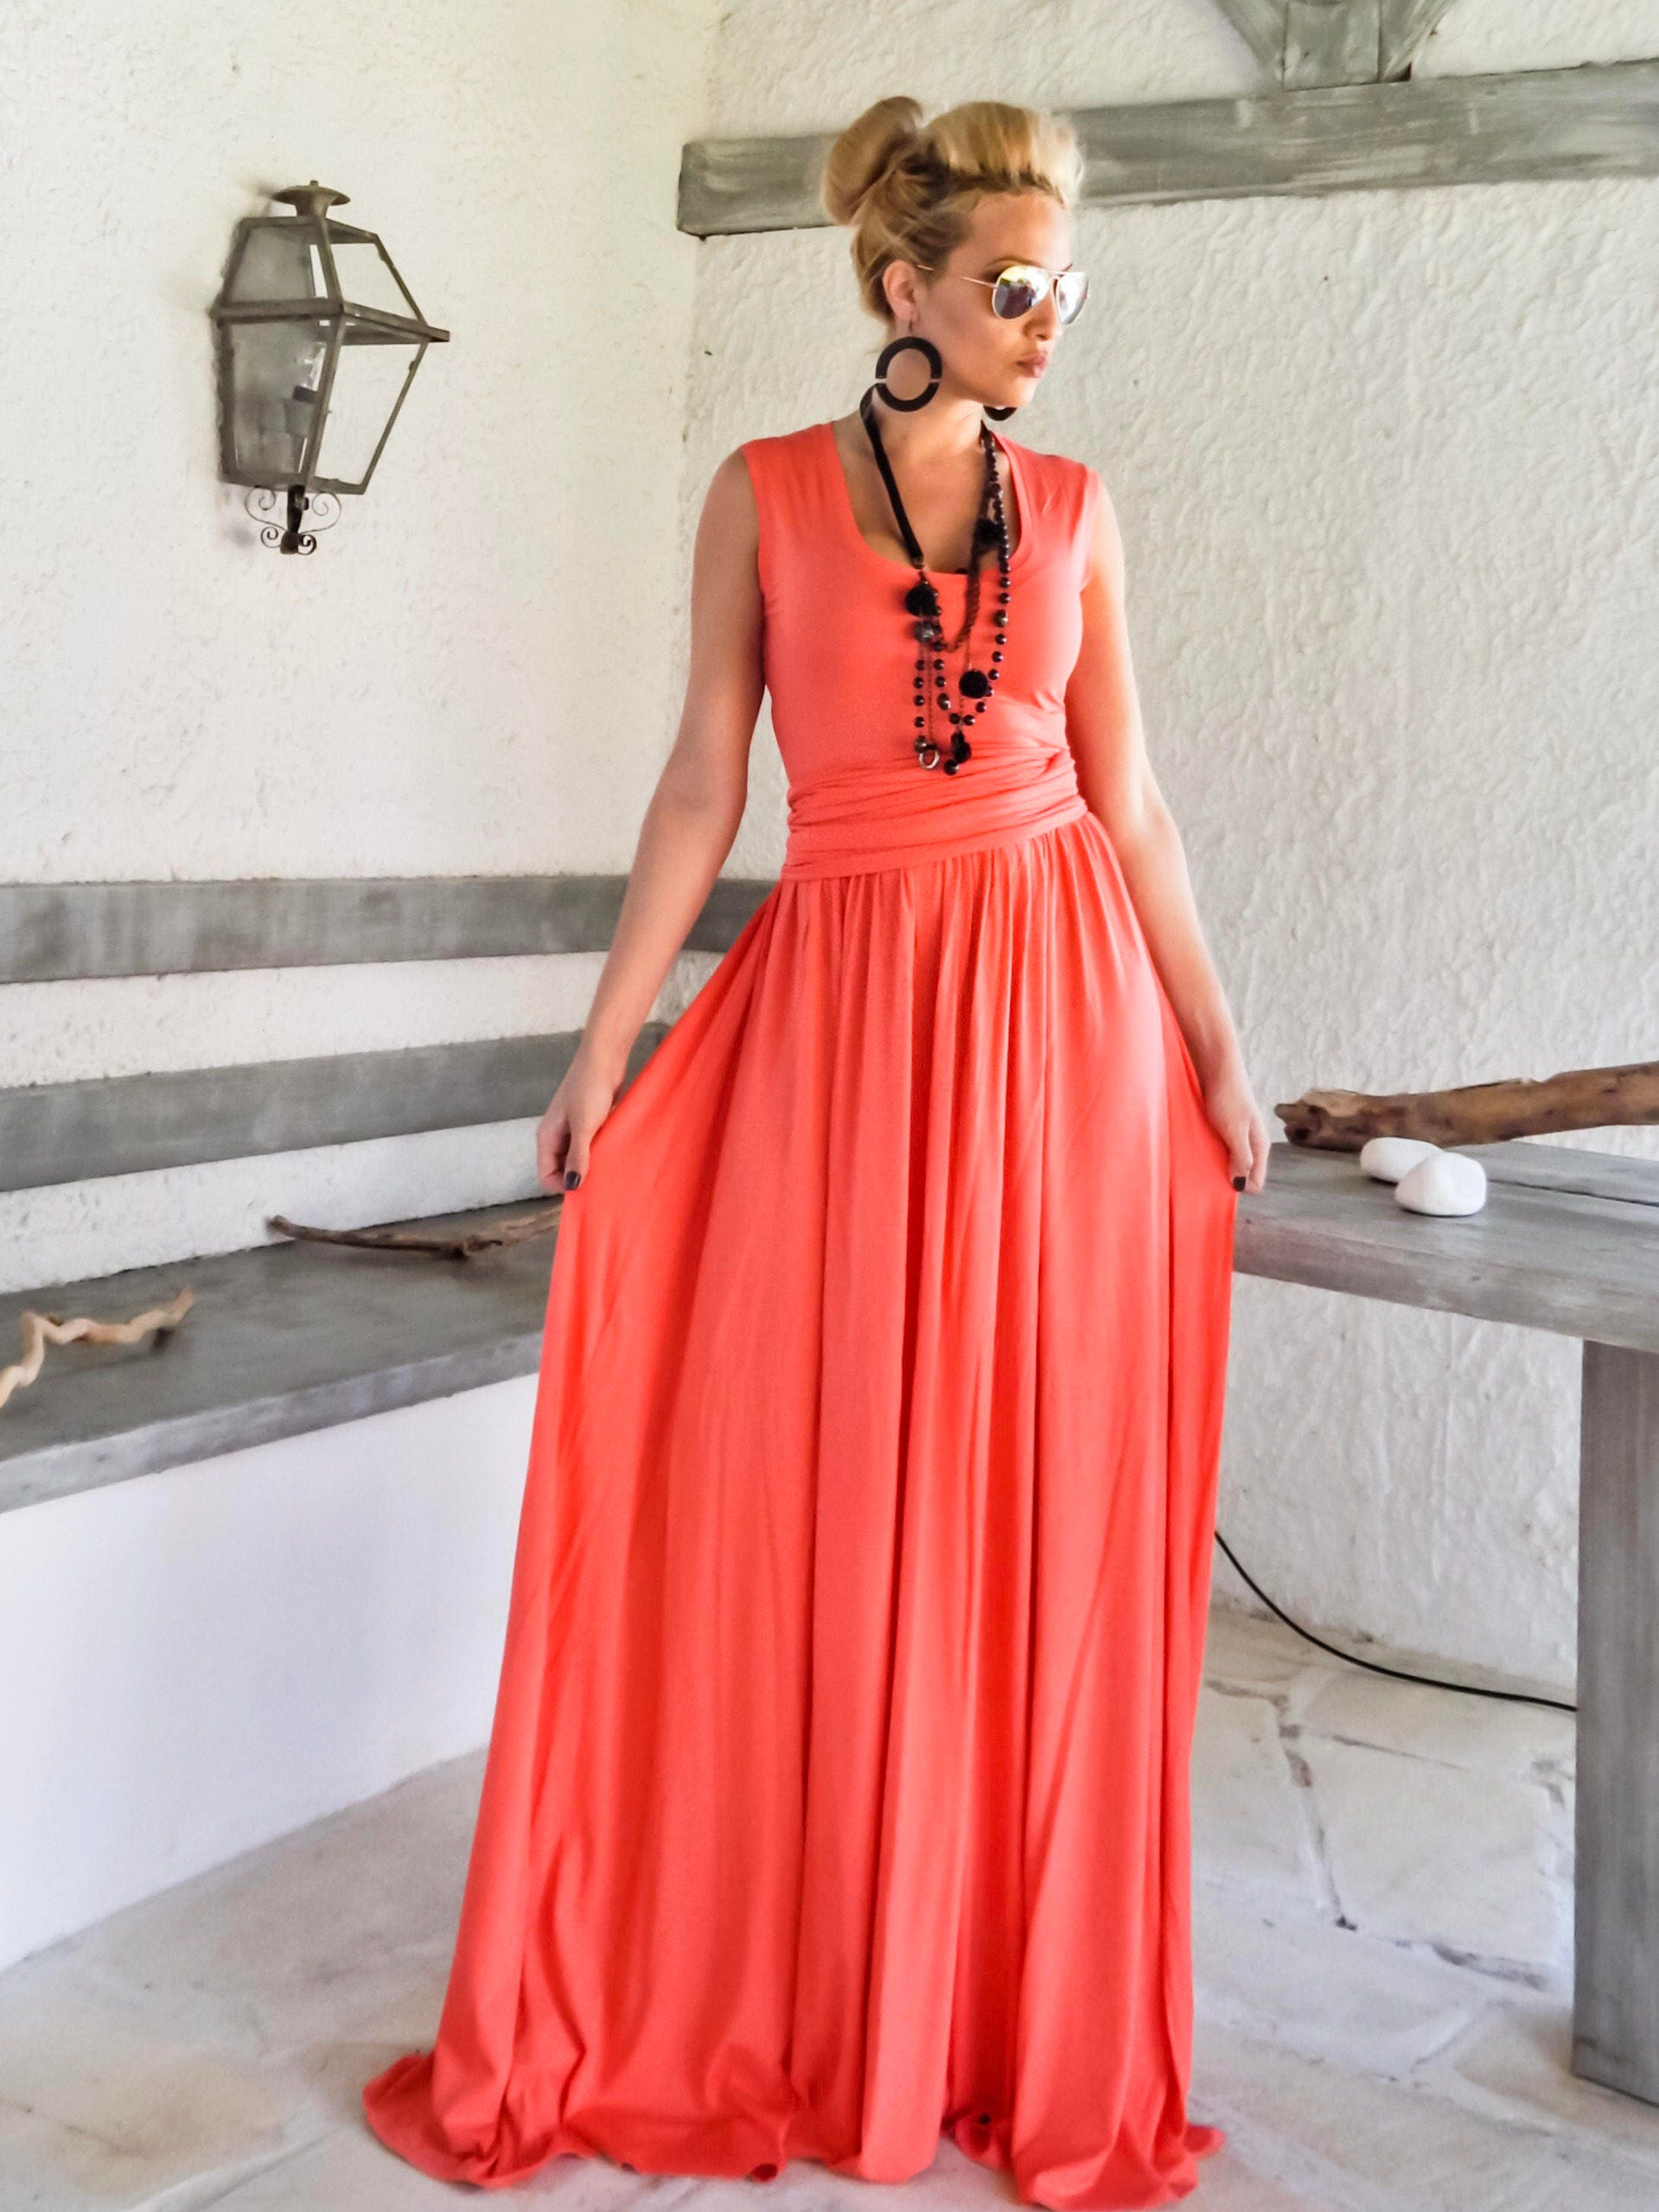 NEW.... Coral Maxi Dress / Dress with Belt / Plus Size Dress / Plus Size  Maxi / Evening Dress / Party Dress / Coral Evening Dress / #35237